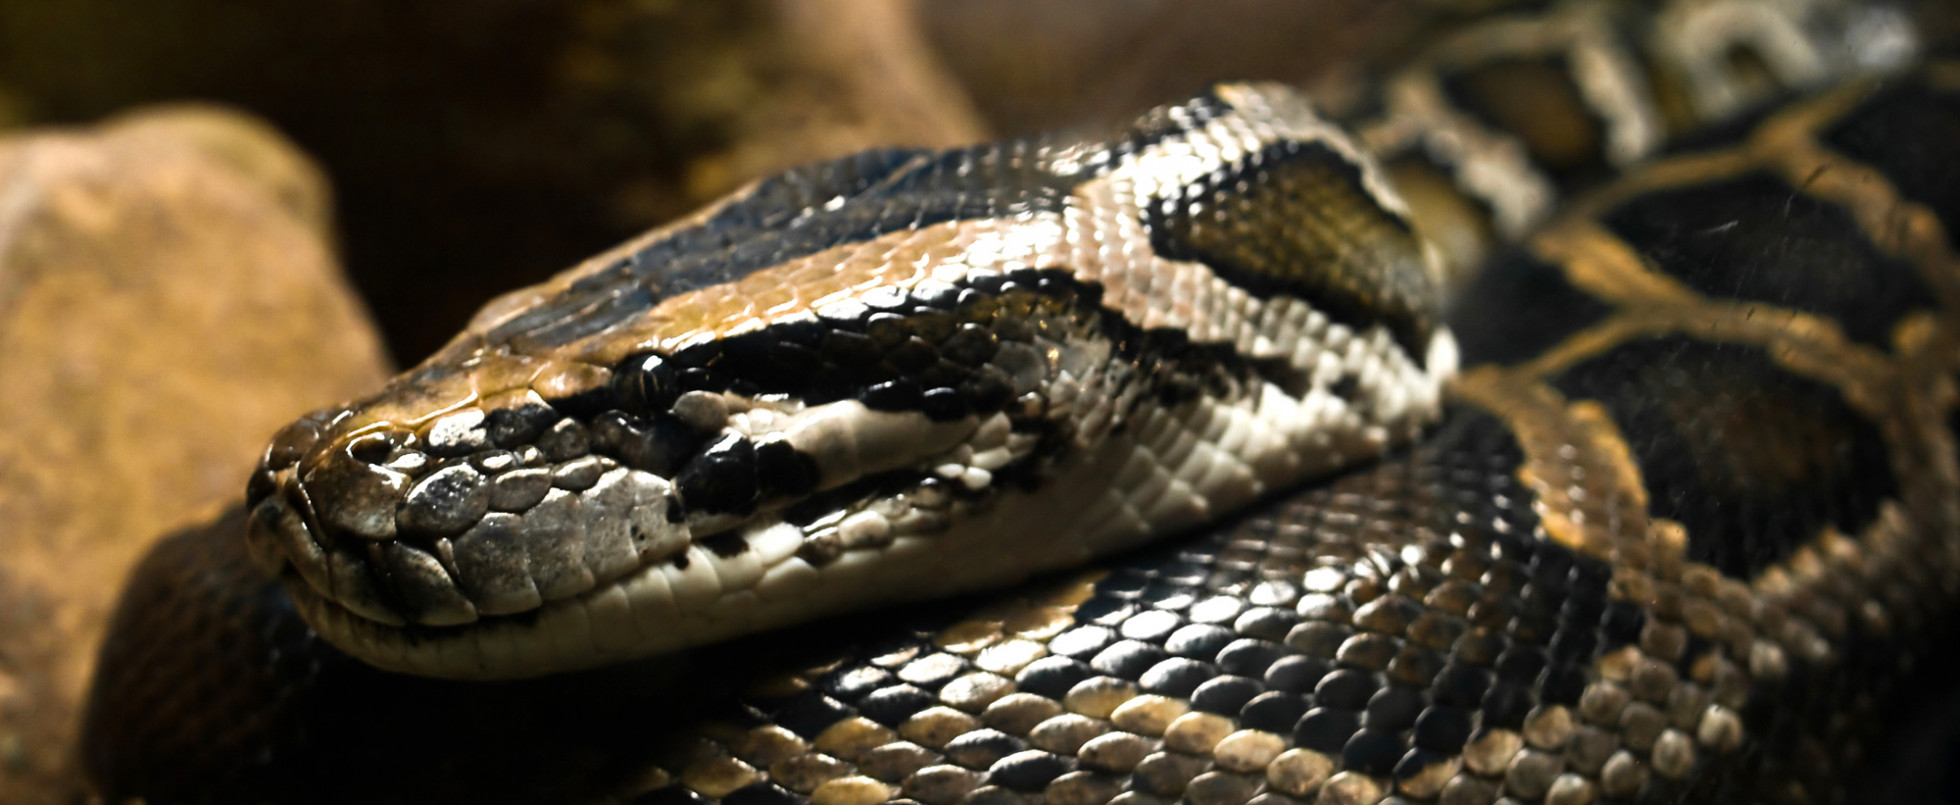 The Reptile House at London Zoo: Parseltongue Talk